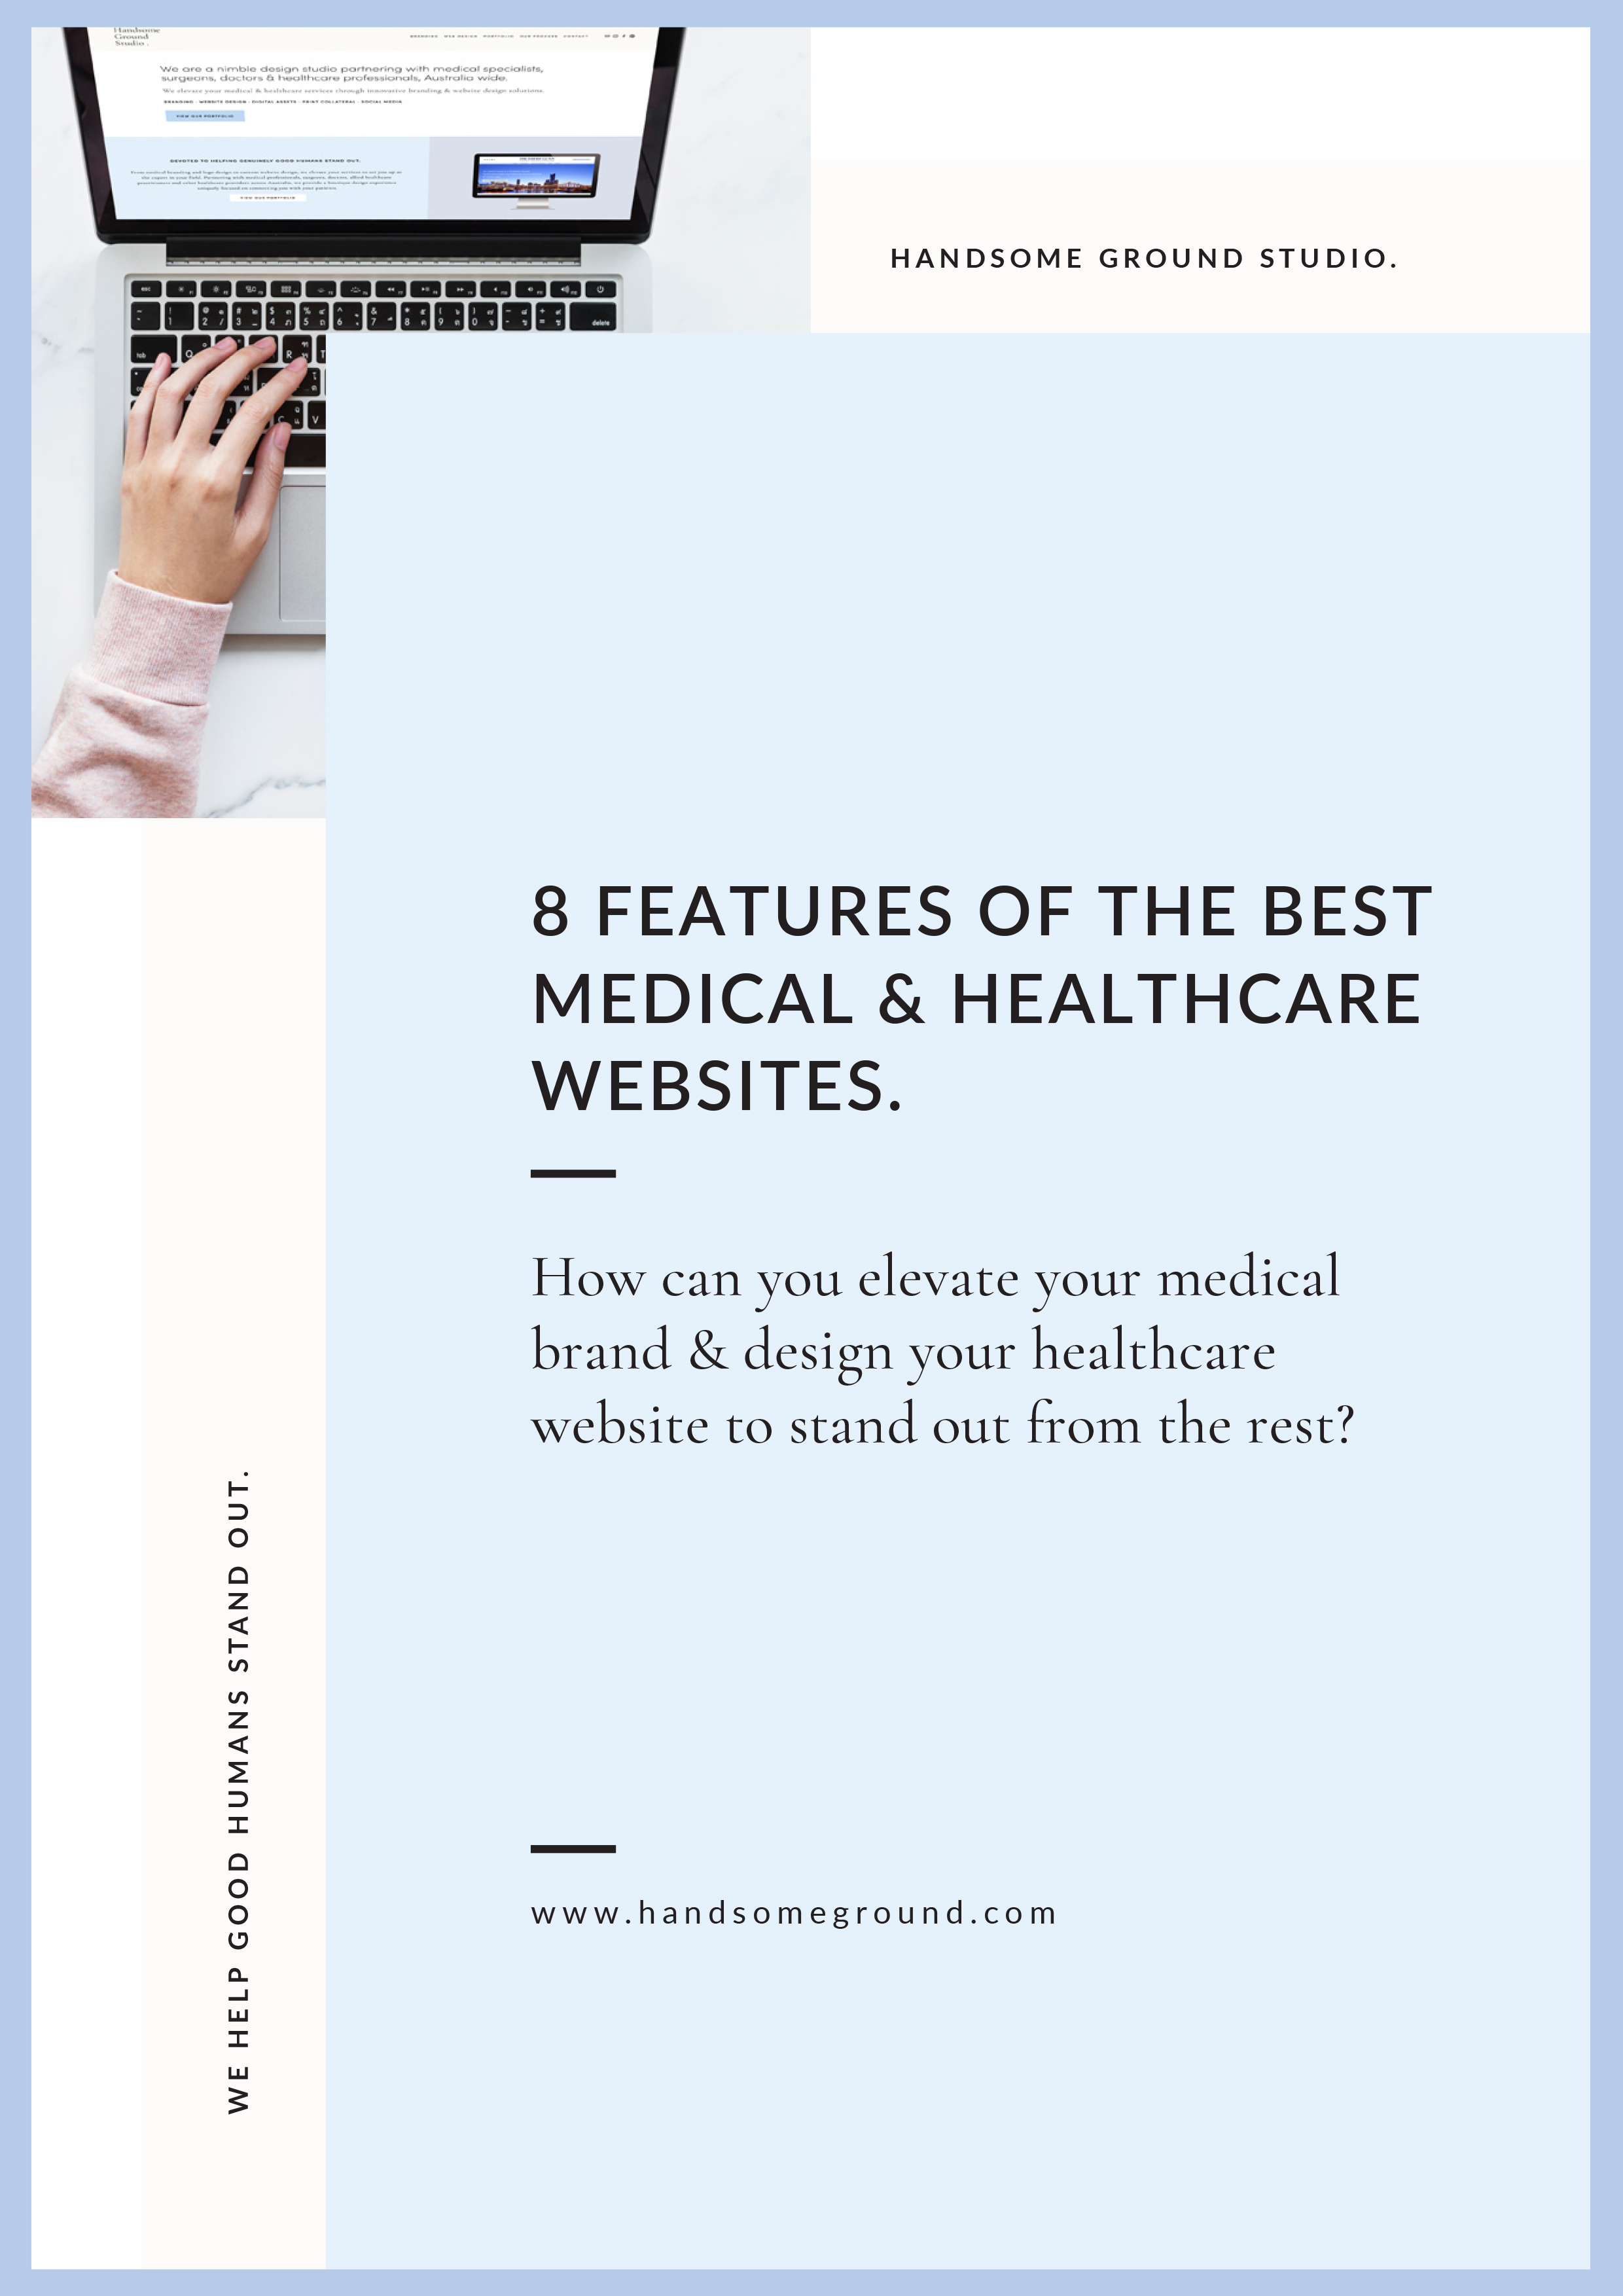 8 Feature of the best medical & healthcare websites HGS.jpg